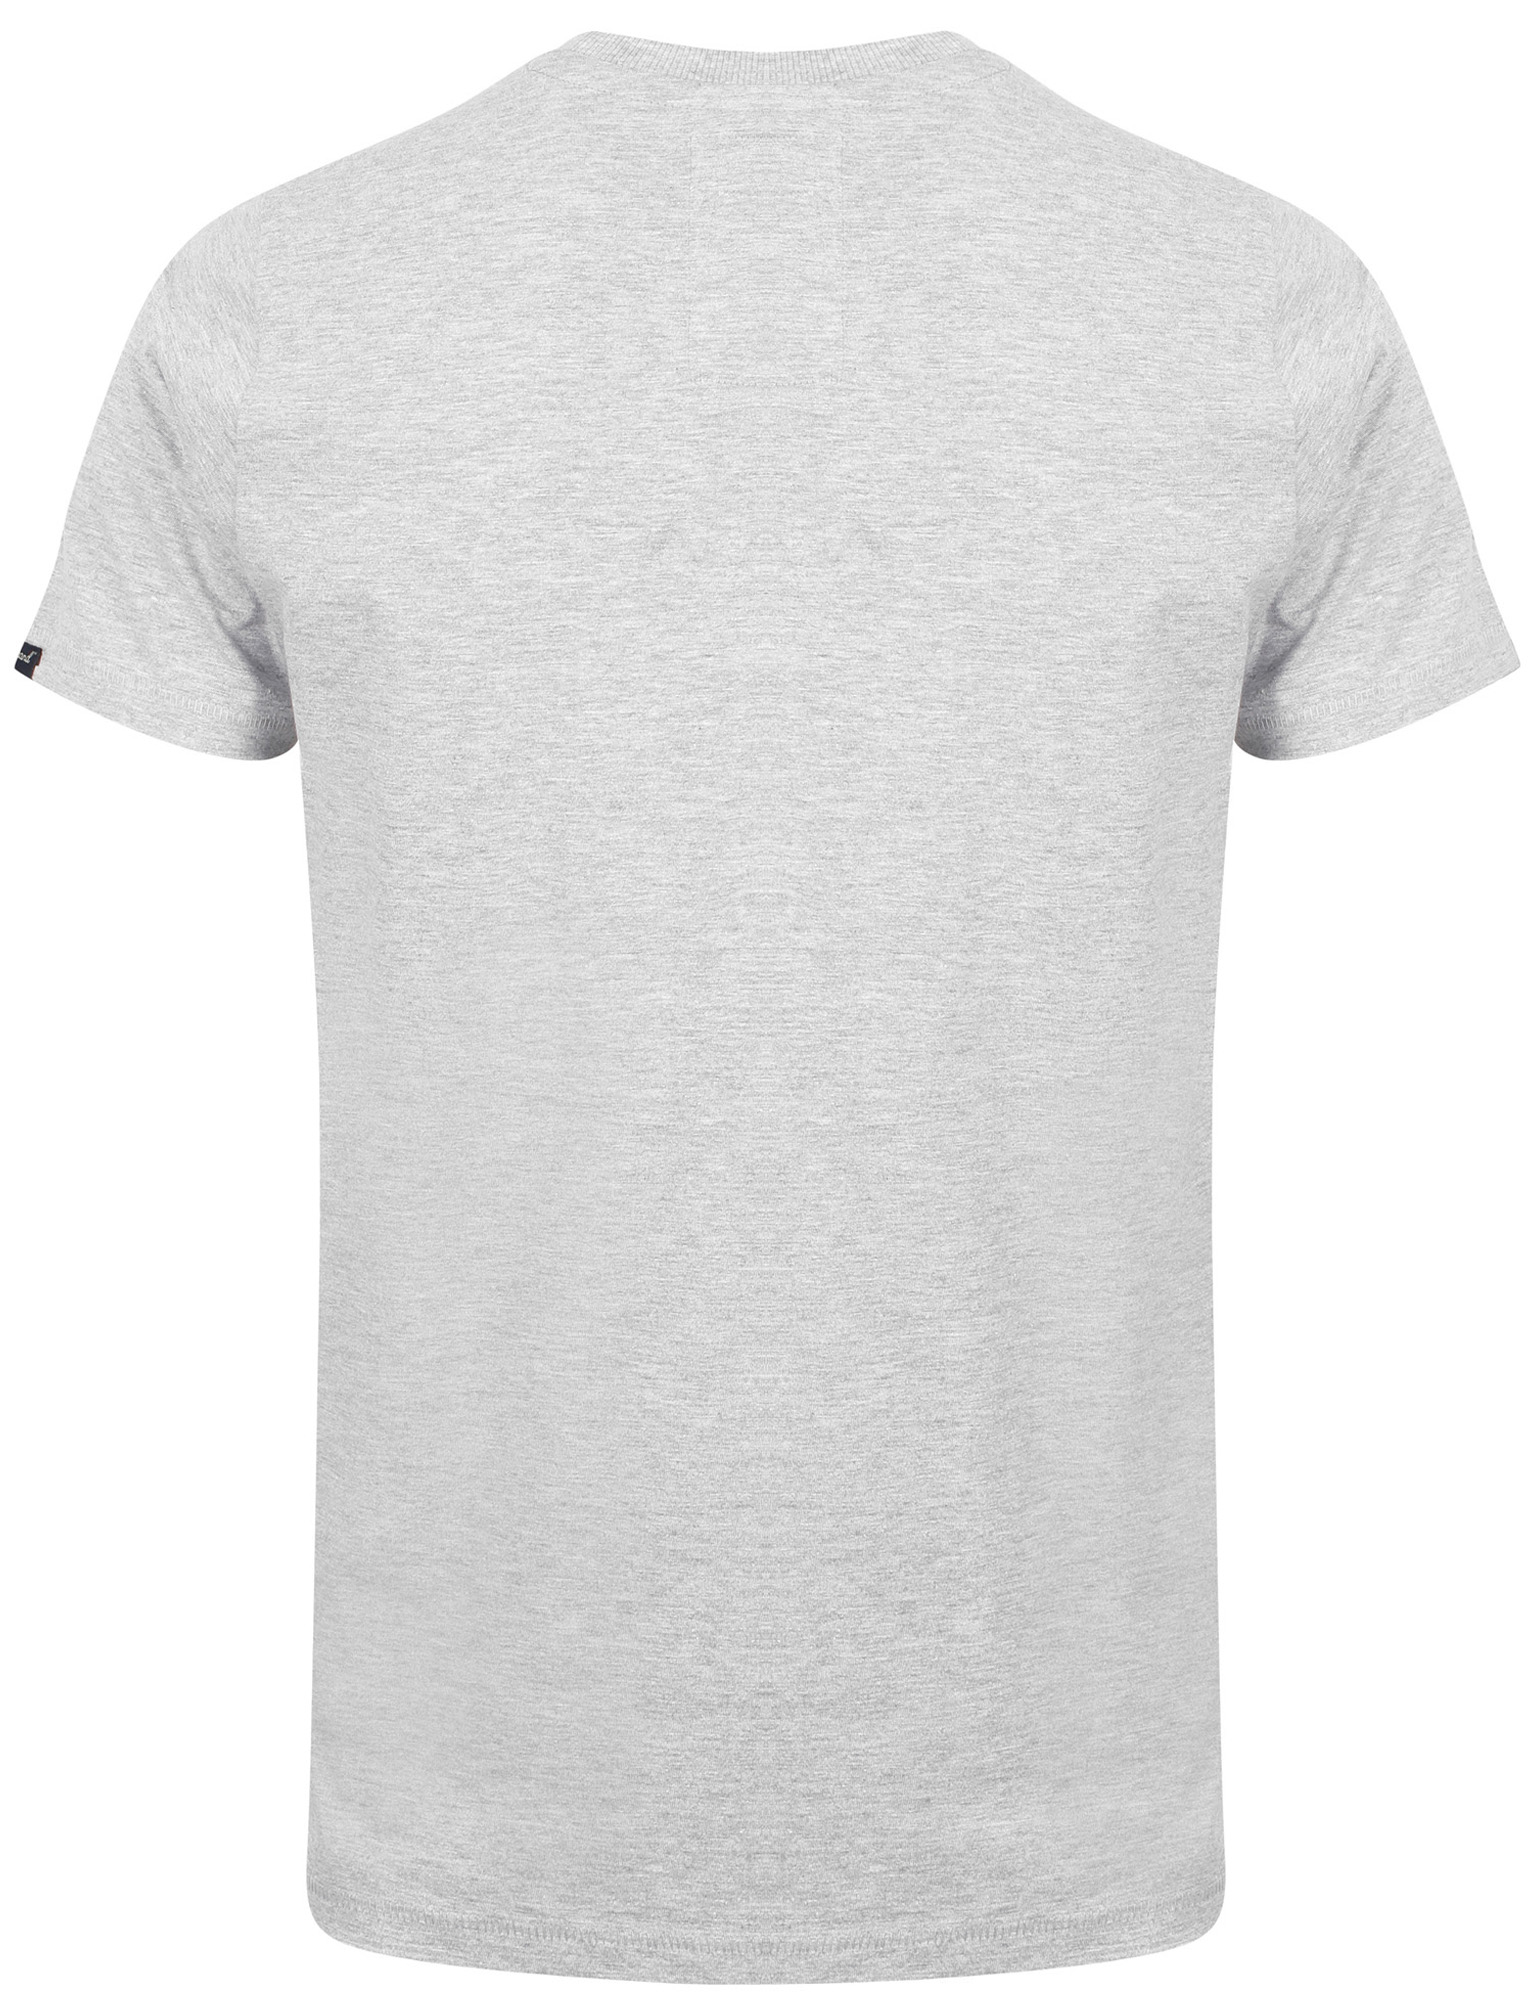 New-Mens-Tokyo-Laundry-Montecarlo-Crew-Neck-Cotton-Rich-Soft-T-Shirt-Size-S-XXL thumbnail 3